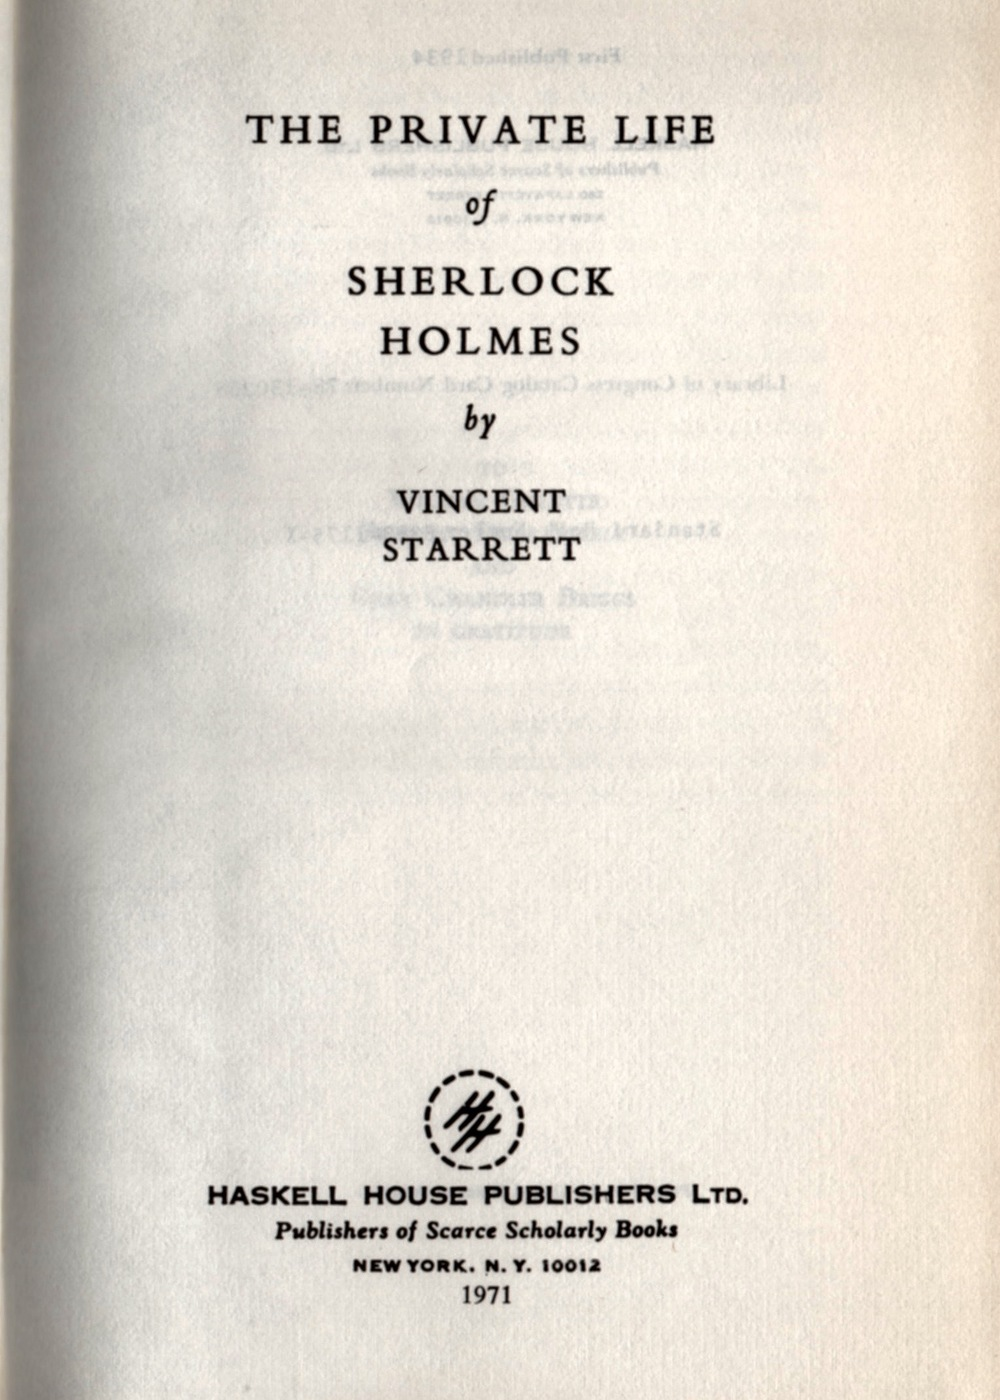 Haskell title page.jpg